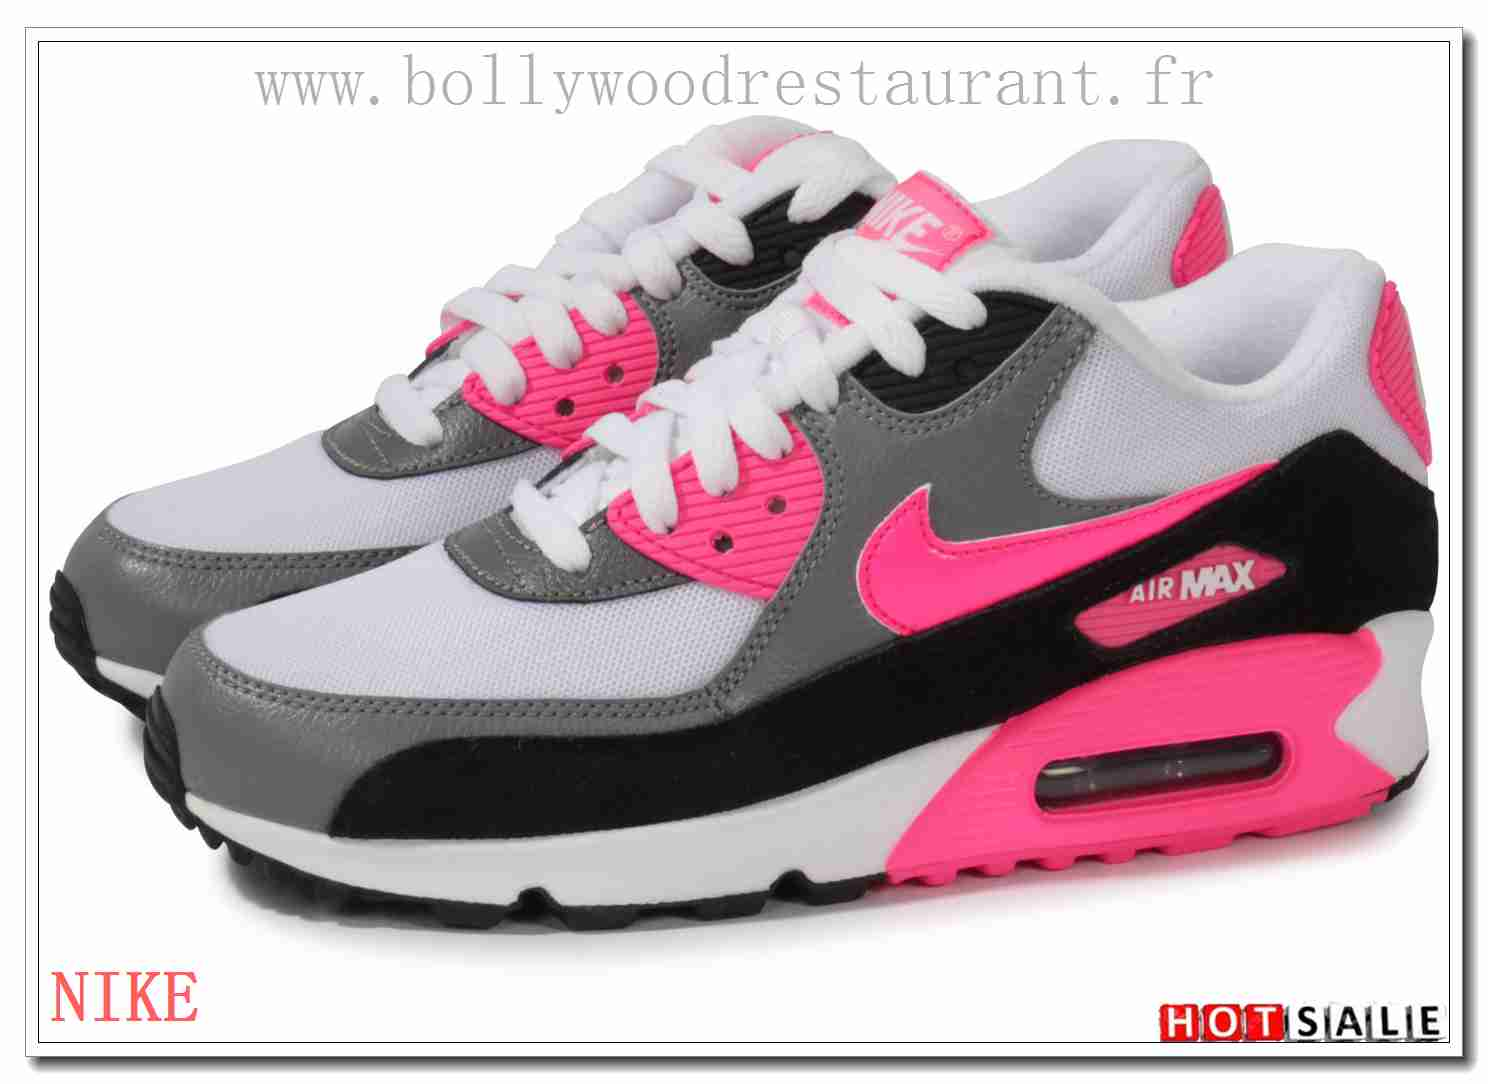 femme/homme nike air max 90 marron/gris/rose